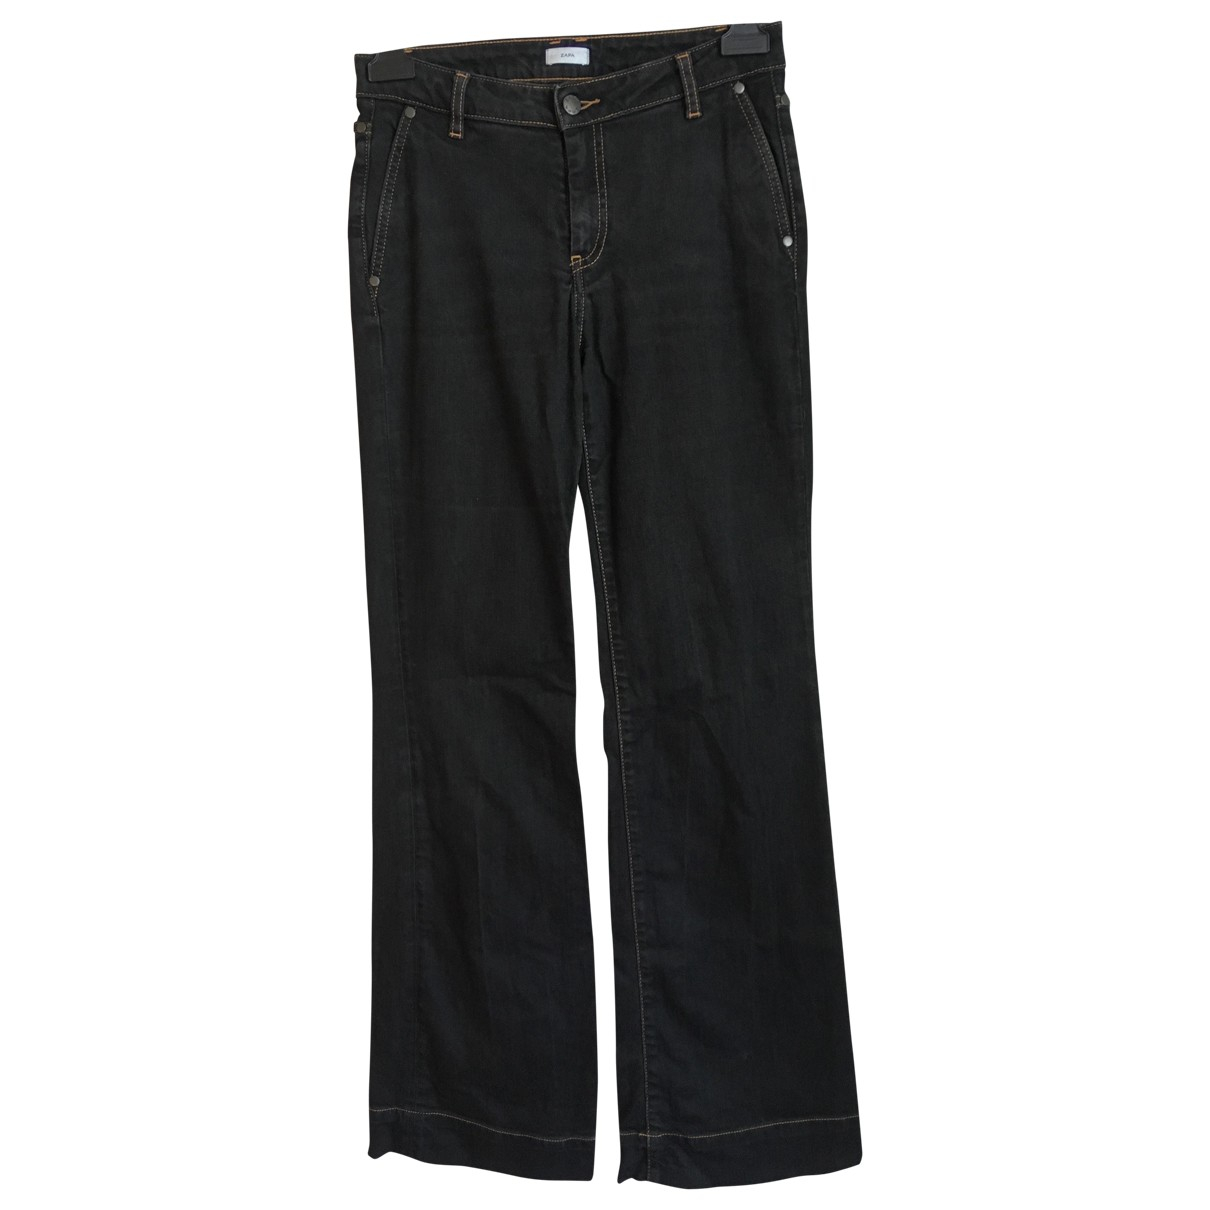 Zapa \N Black Cotton Jeans for Women 38 FR